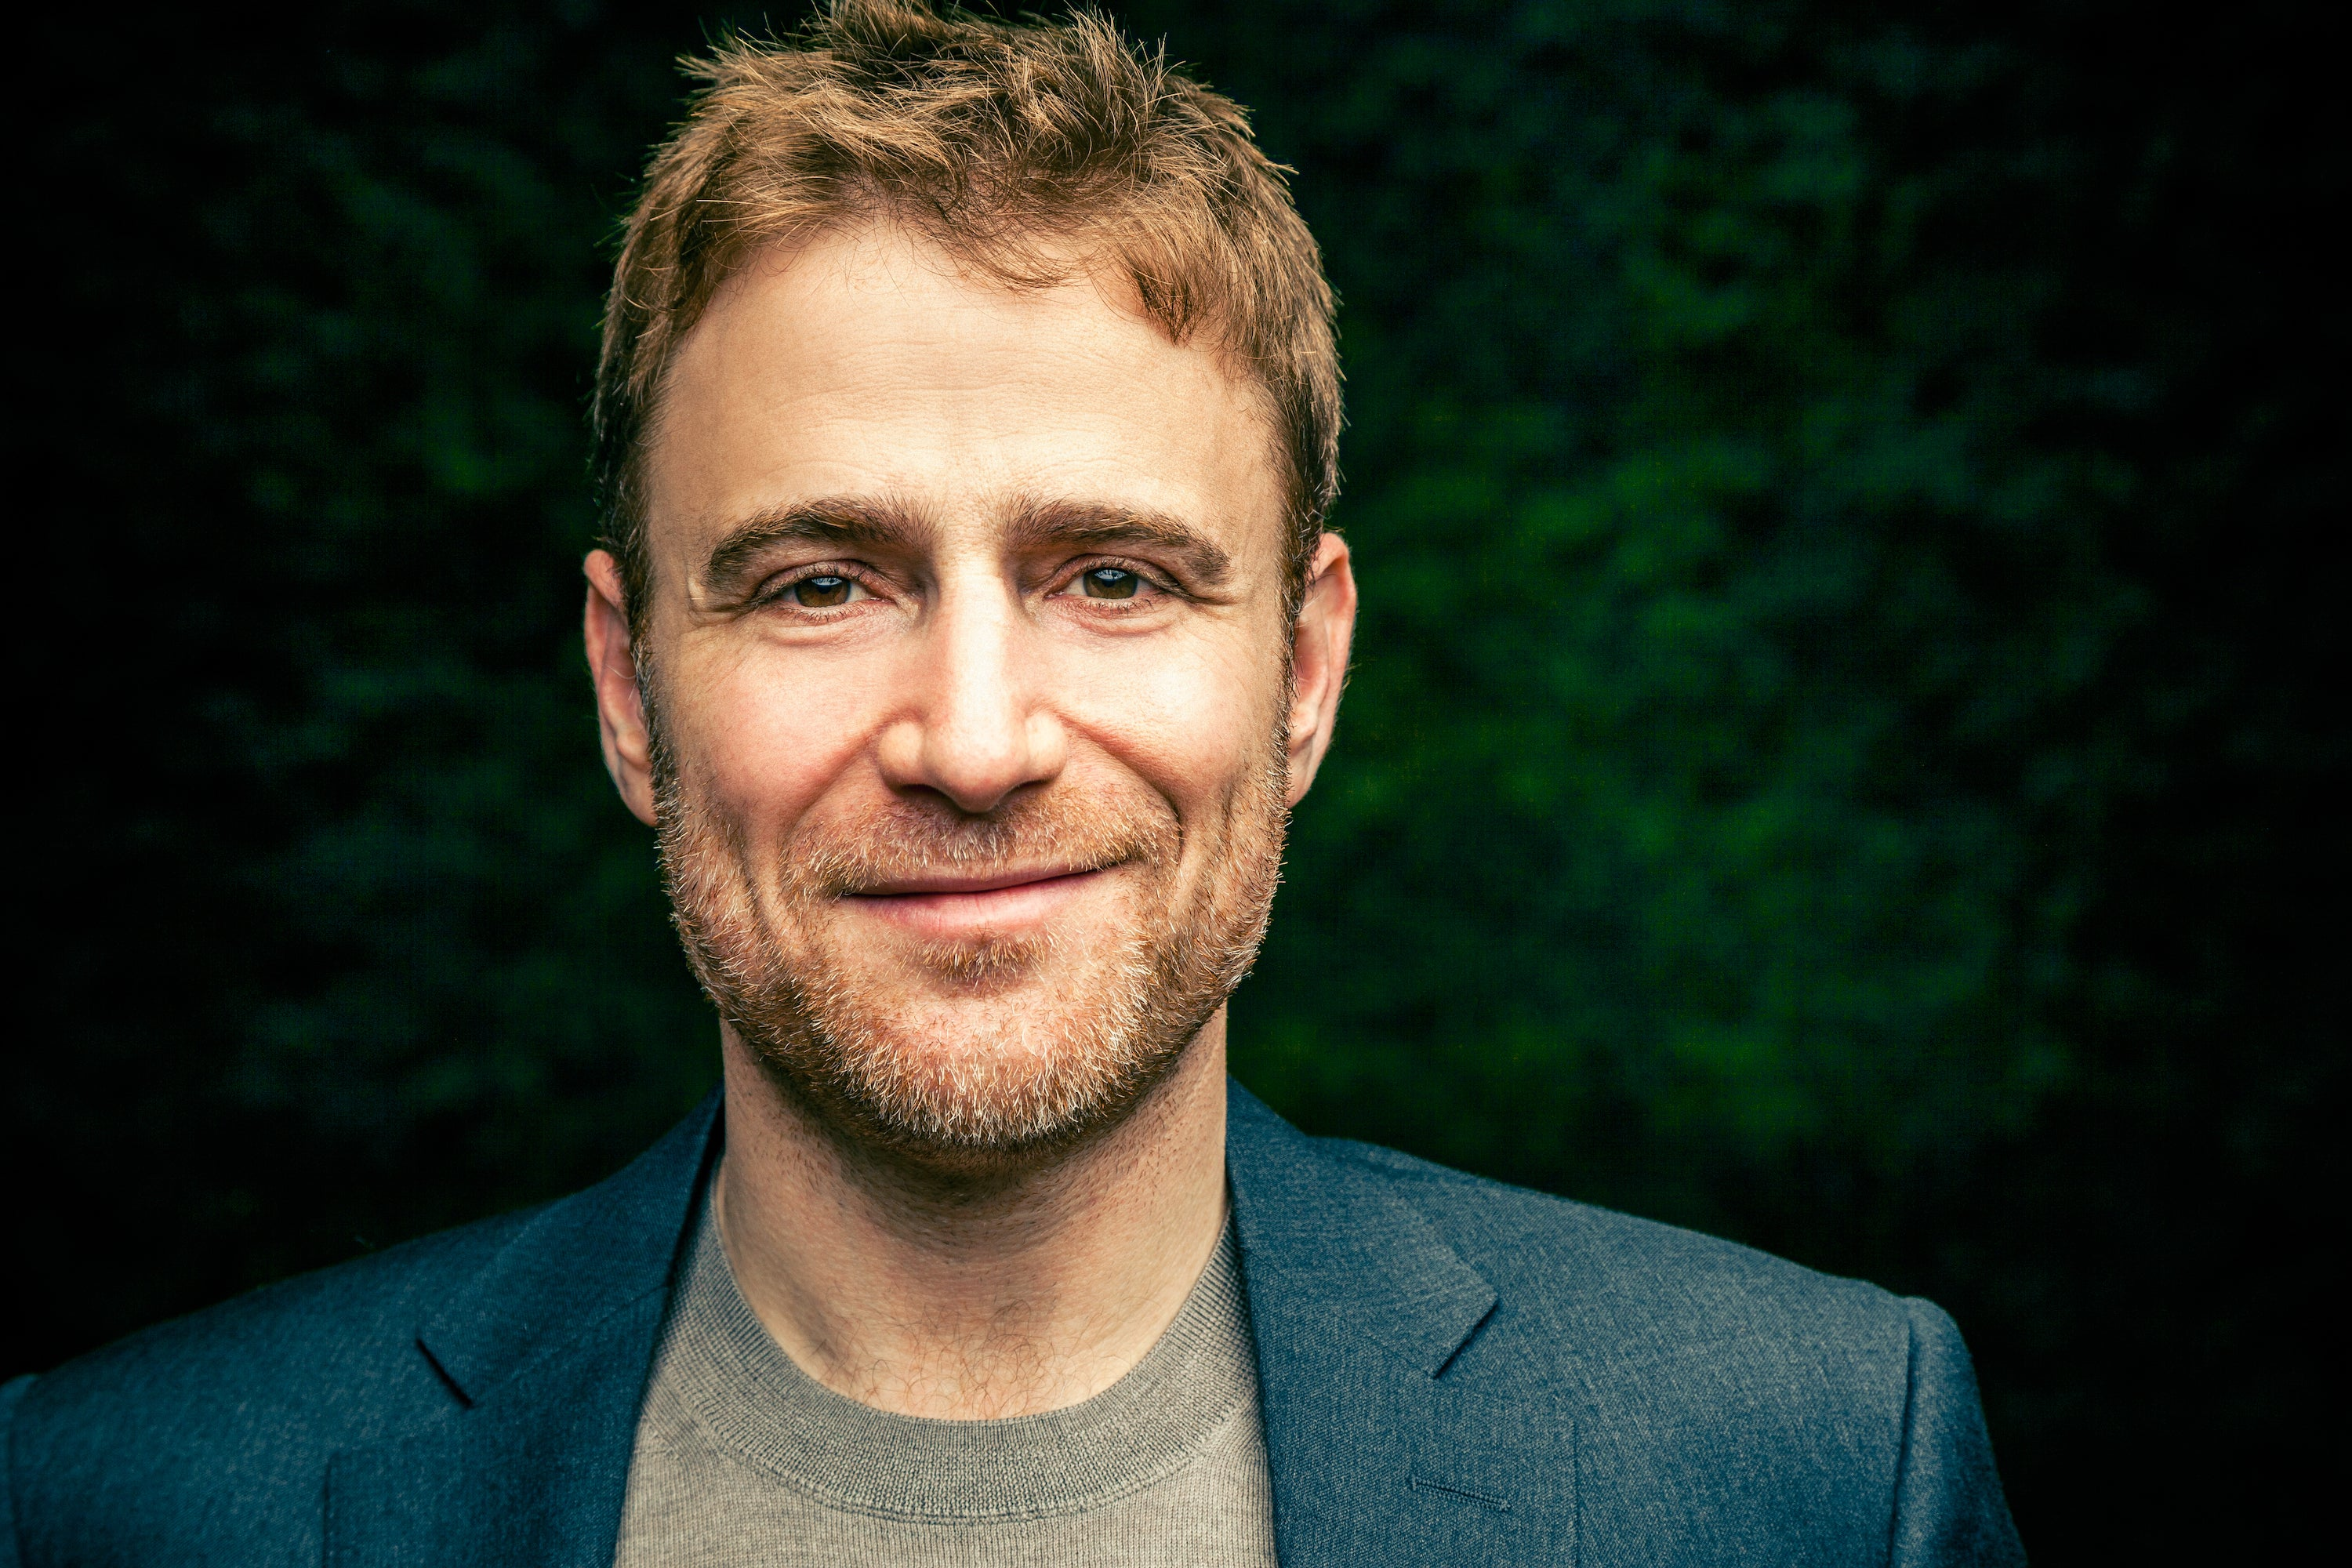 Stewart Butterfield with some greenery in the background